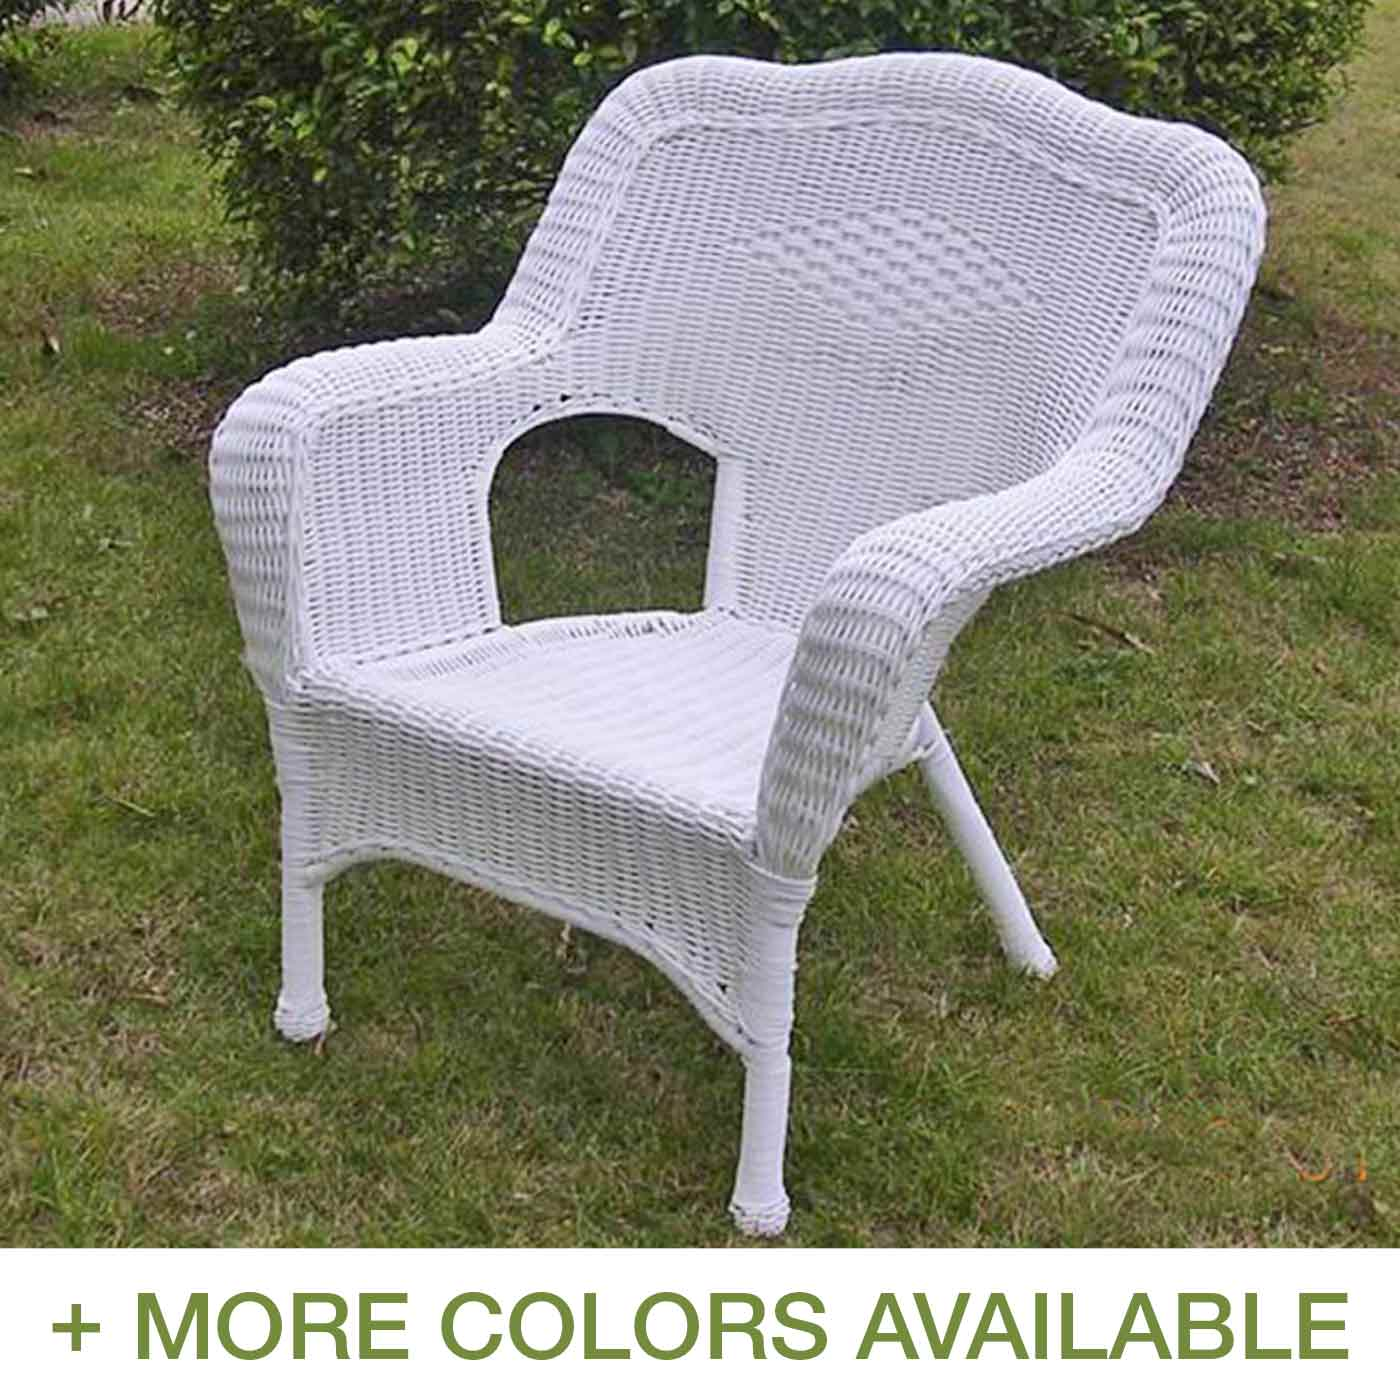 wicker patio chair set of 2 booster seat international caravan camelback resin chairs